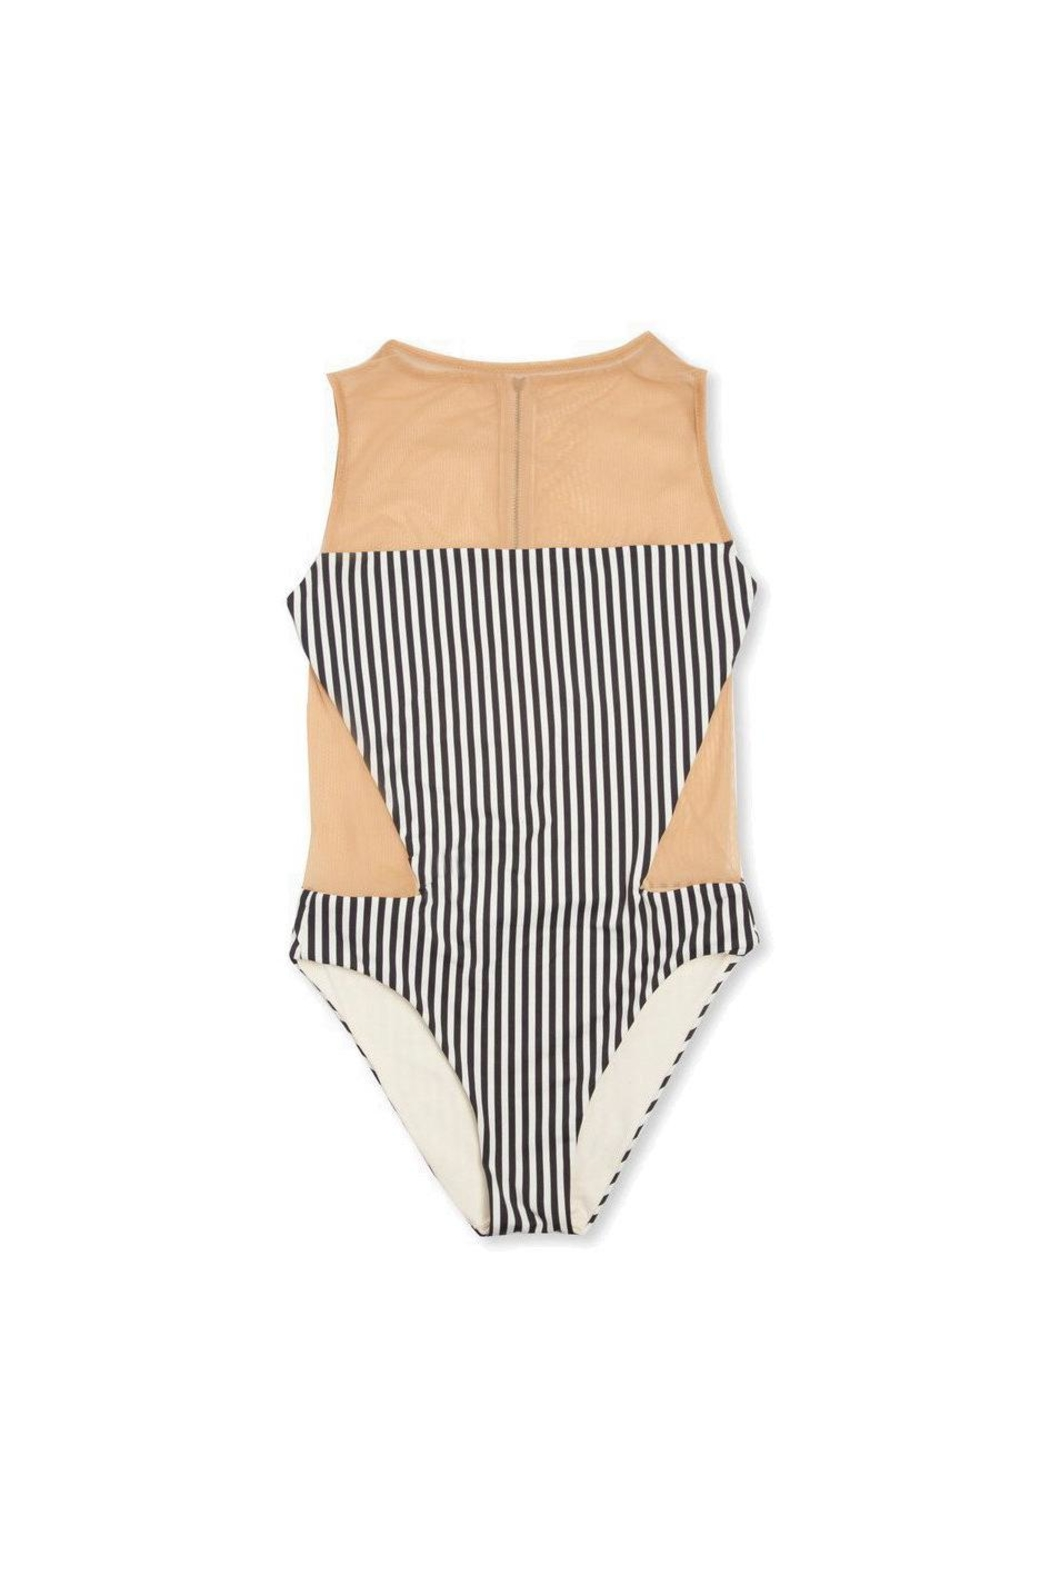 boys + arrows Prude Jude One Piece - Front Cropped Image